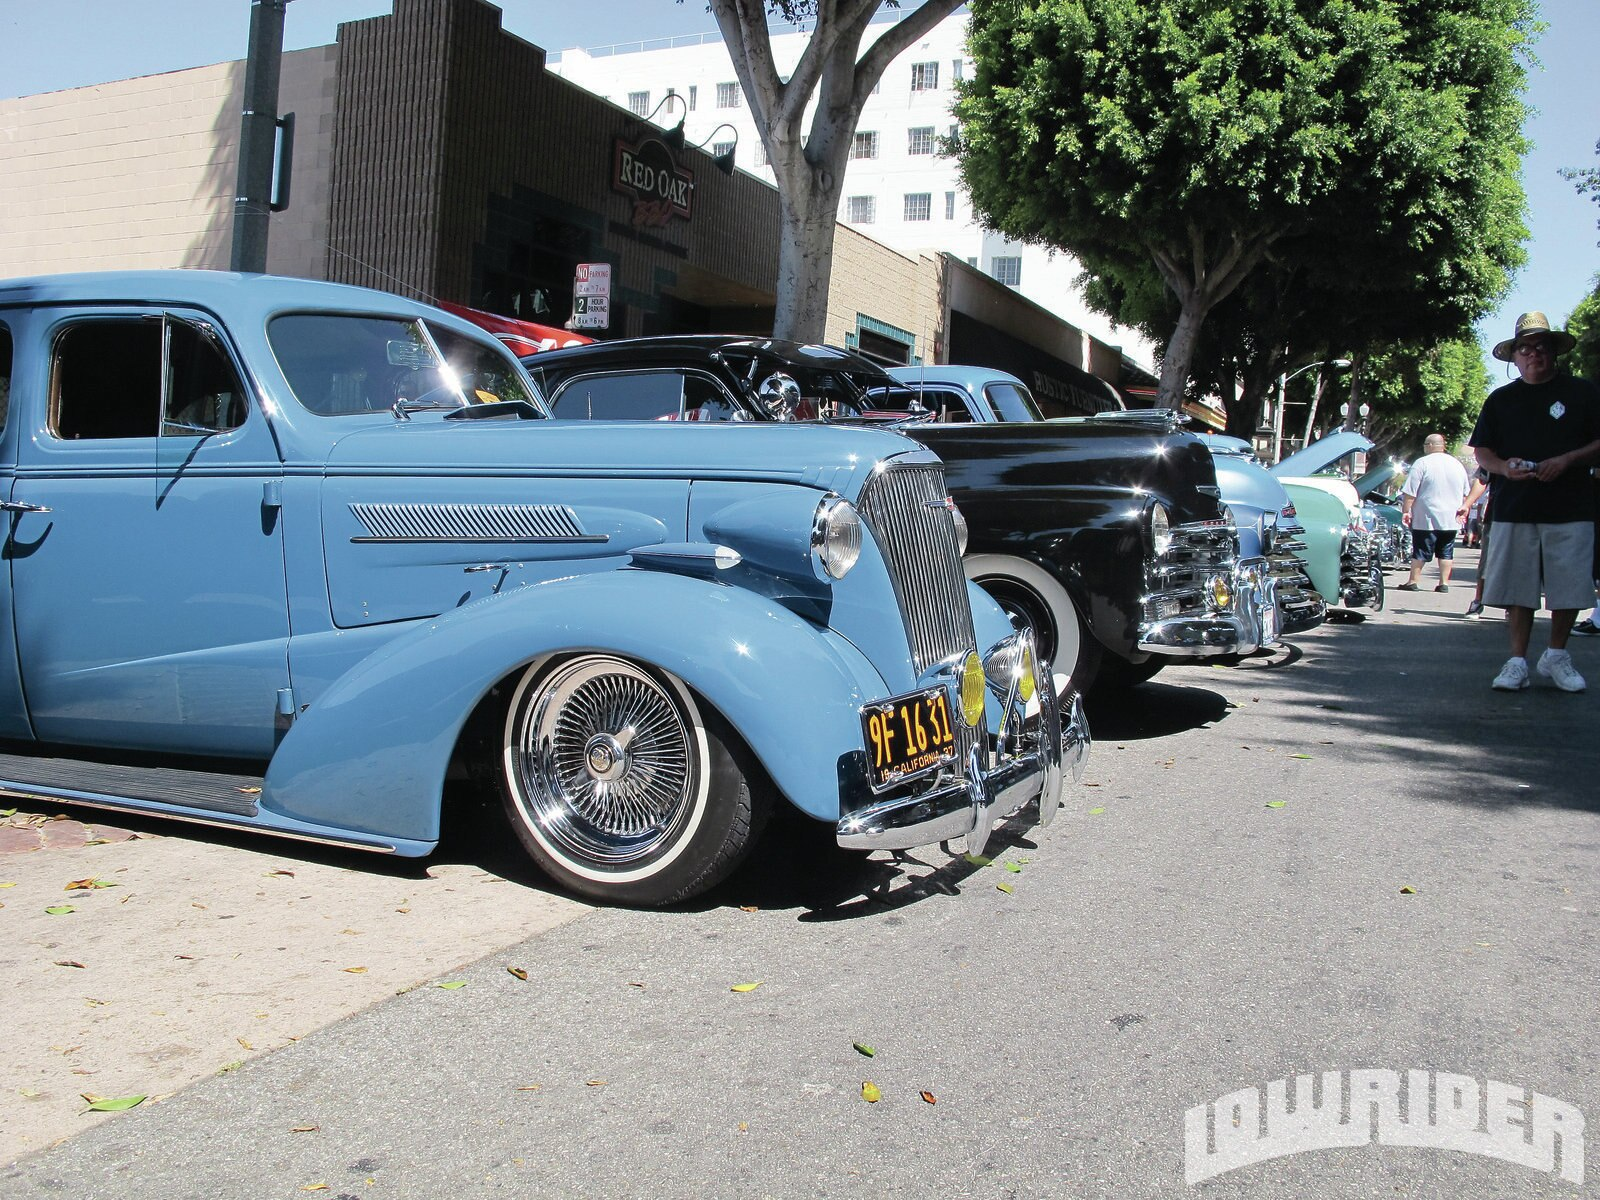 1305-12th-annual-whittier-car-show-lowriders-lined-up1